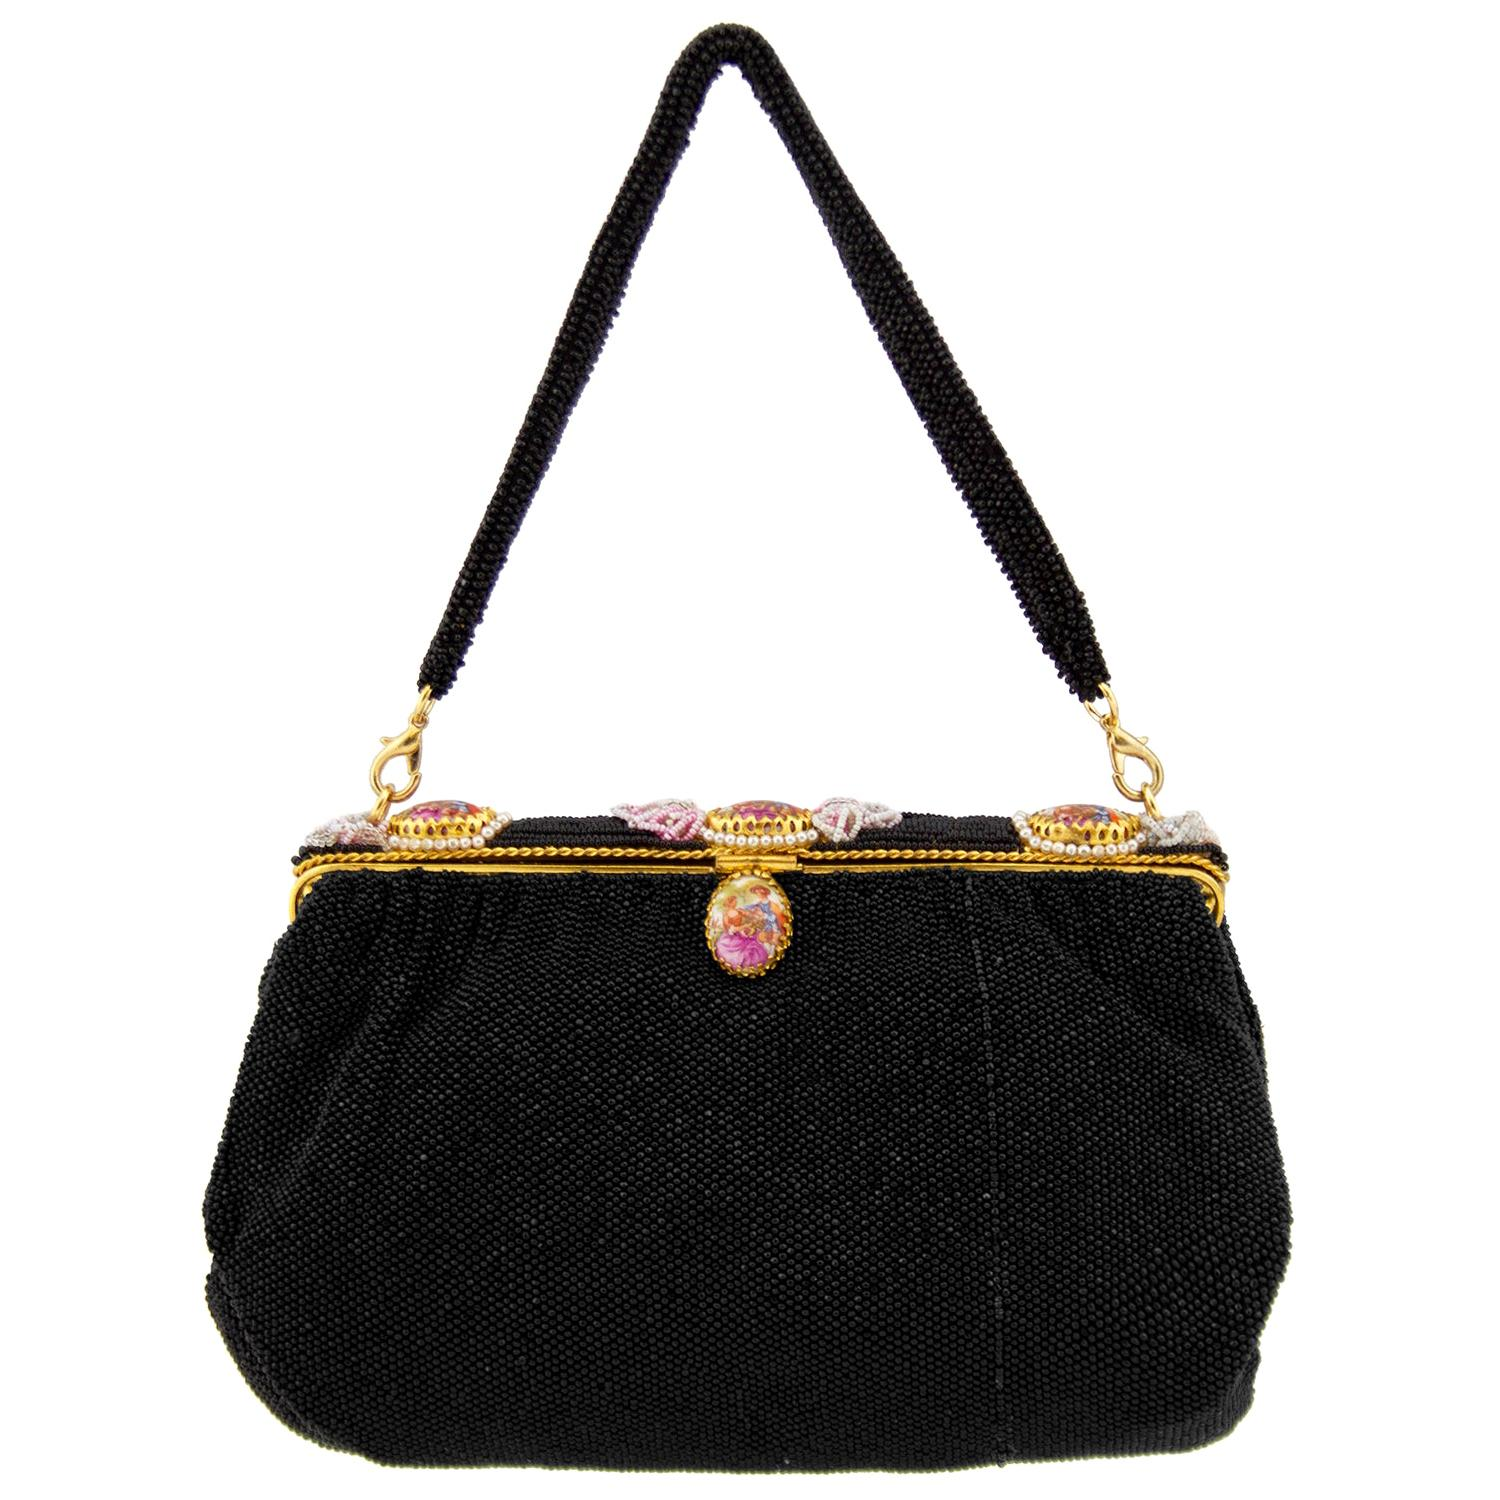 1950's French Black Beaded Evening Bag With Cameos